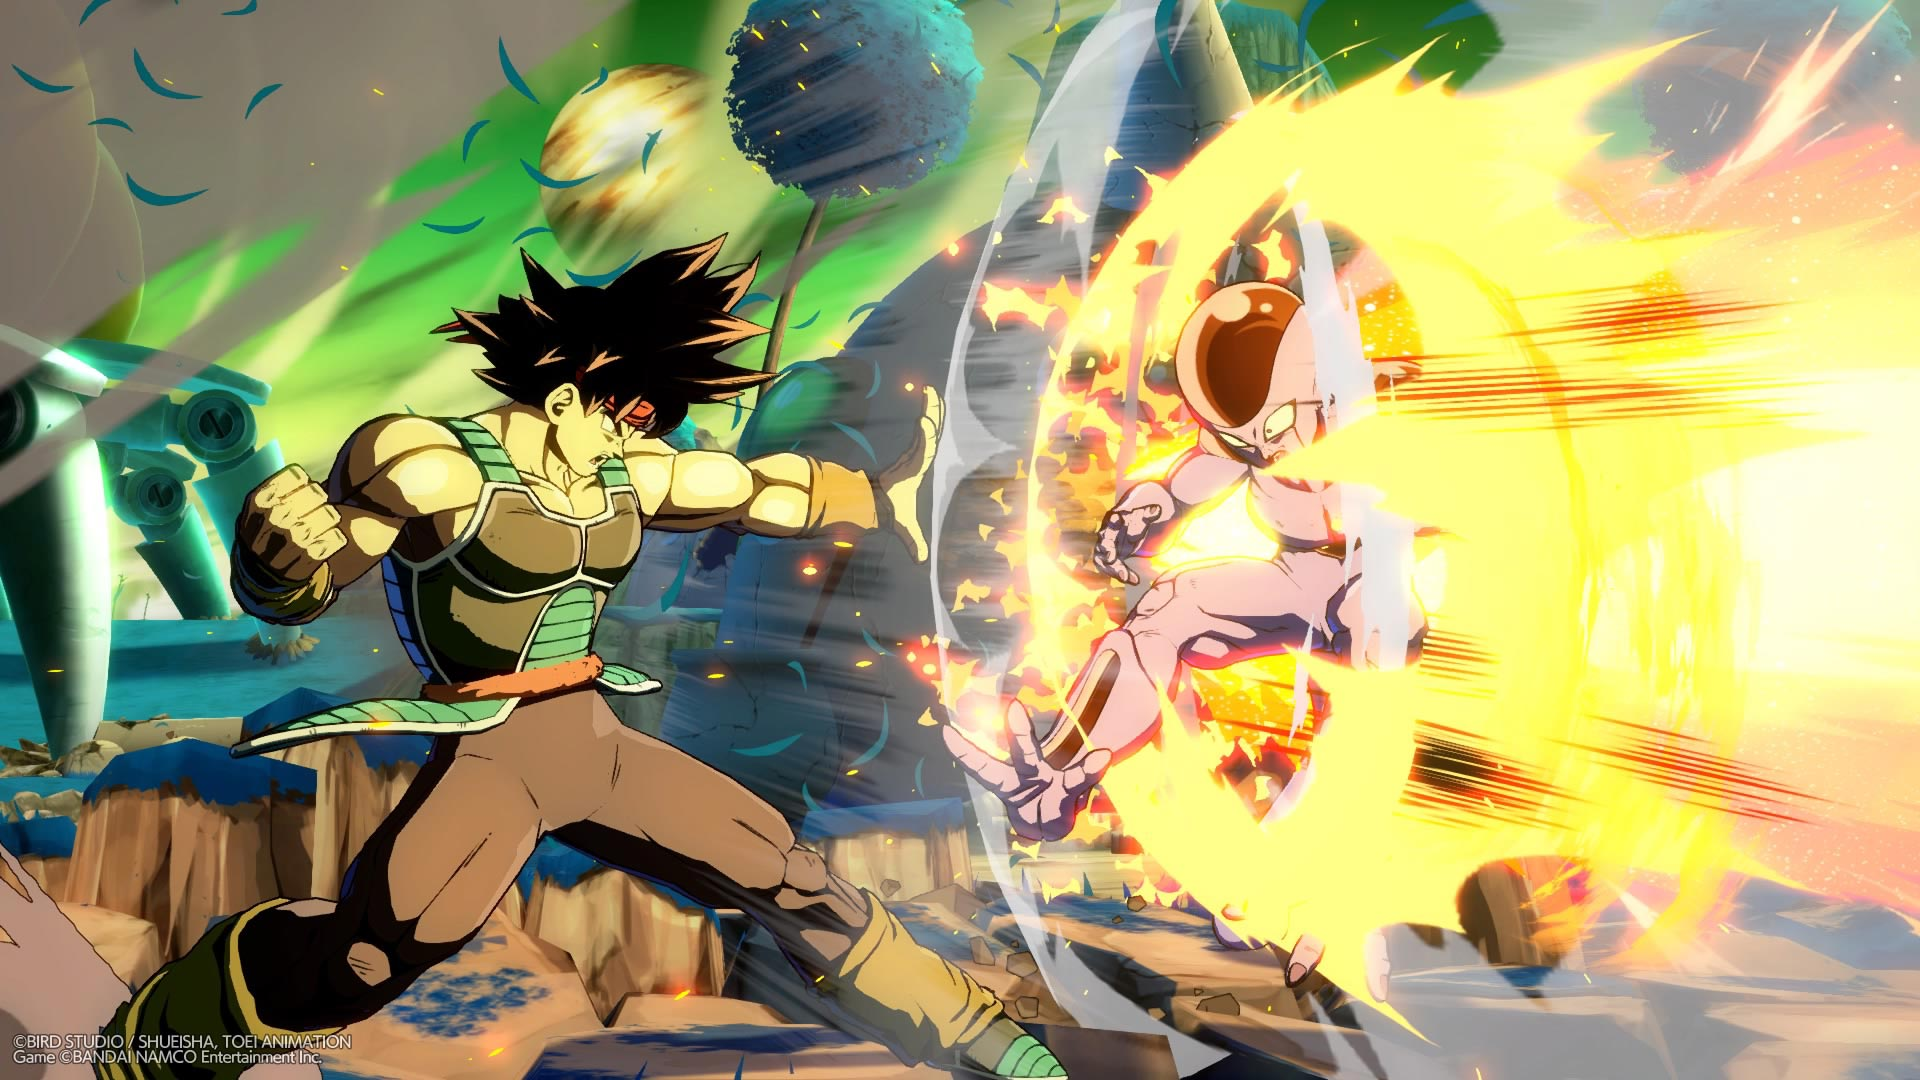 Broly and Bardock screenshots in Dragon Ball FighterZ 10 out of 12 image gallery